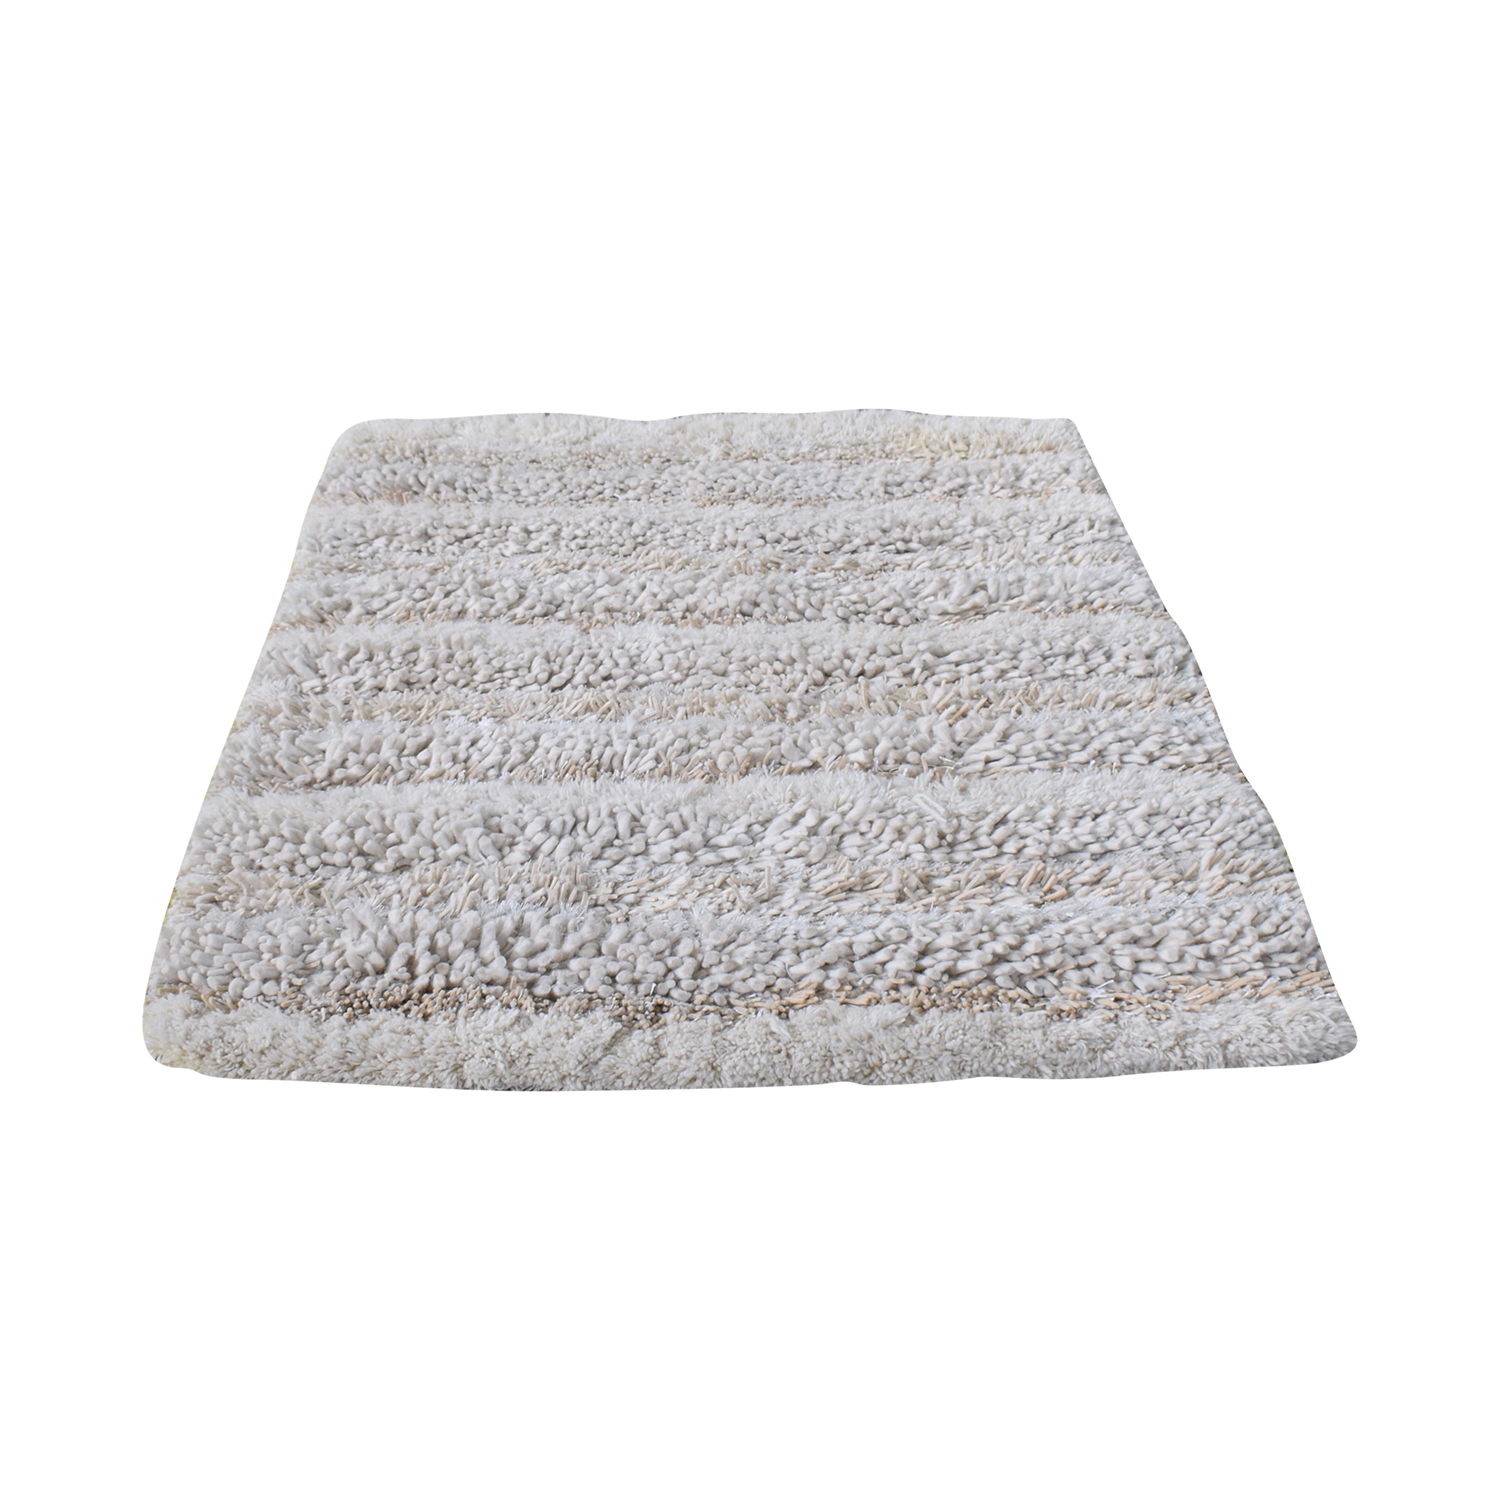 Crate & Barrel Crate & Barrel Felix Shag Rug price